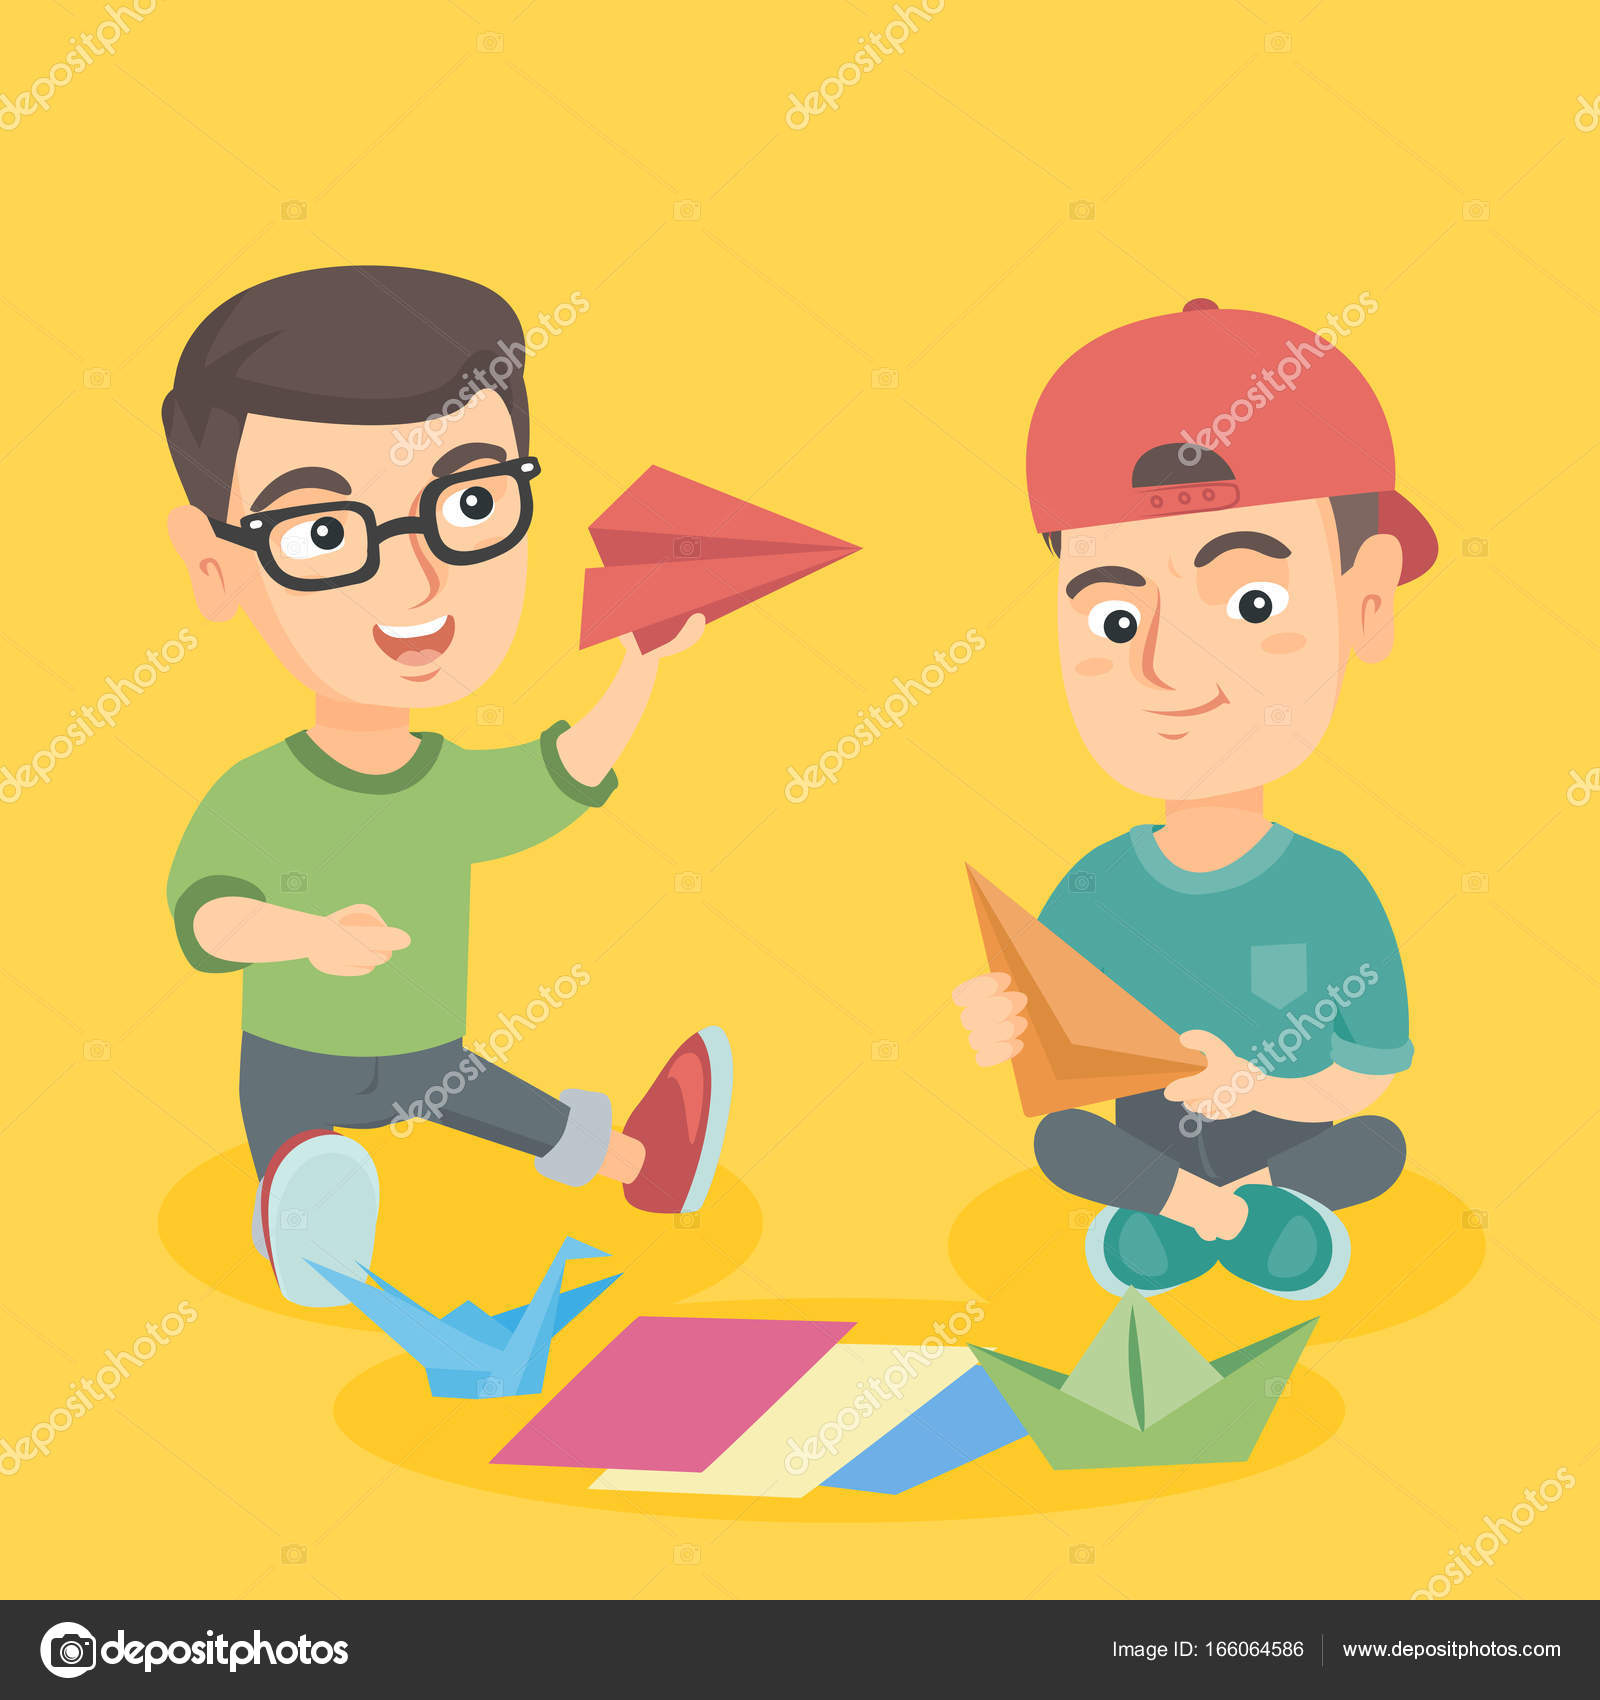 Caucasian Children Folding Paper And Making Origami Toys Friends Playing With Plane Boat Bird Creativity Craft Concept